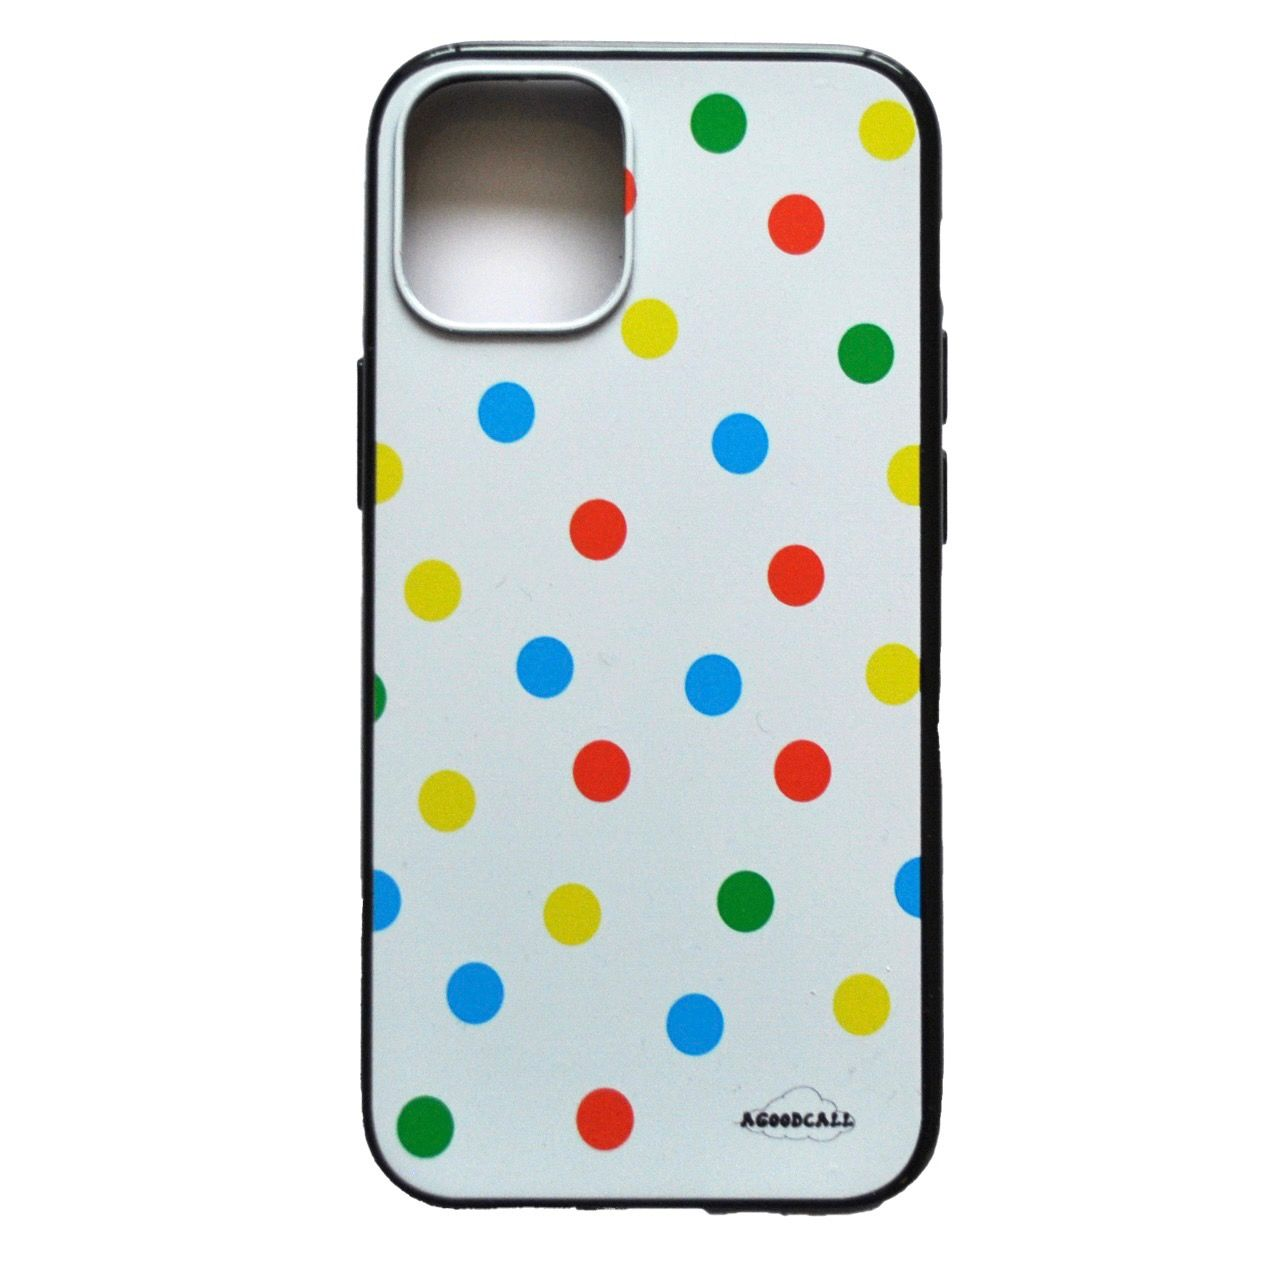 The Dotty - iPhone case